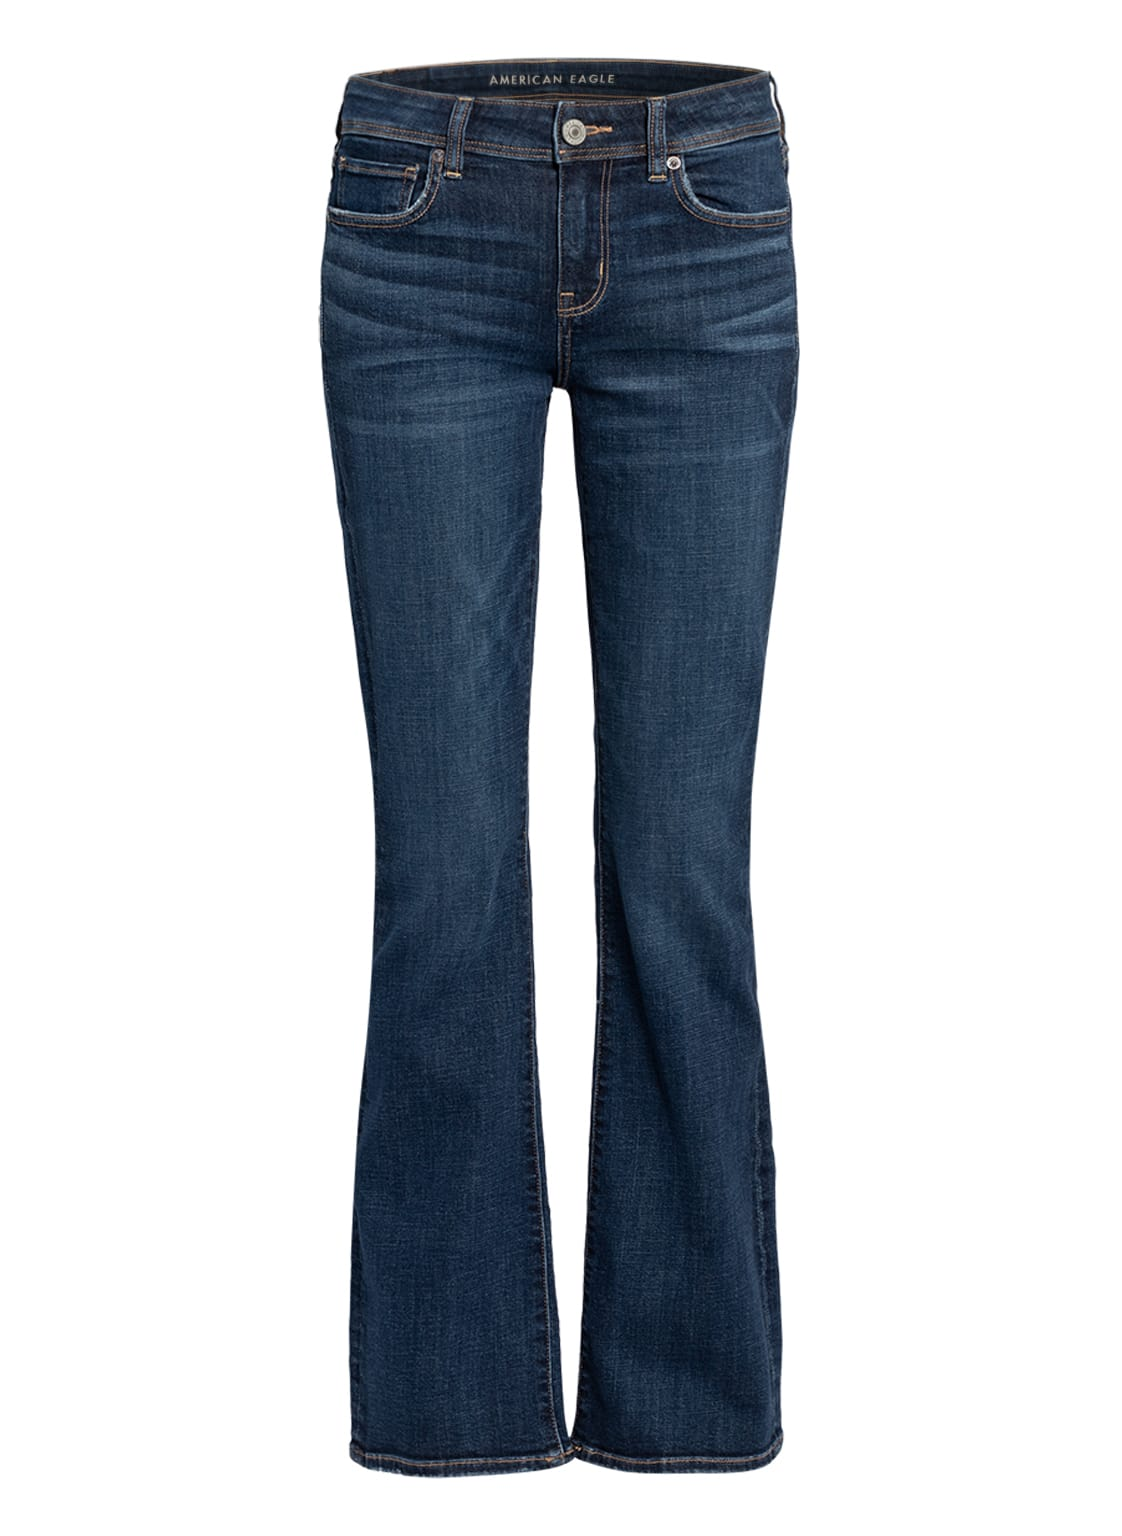 Image of American Eagle Bootcut Jeans beige